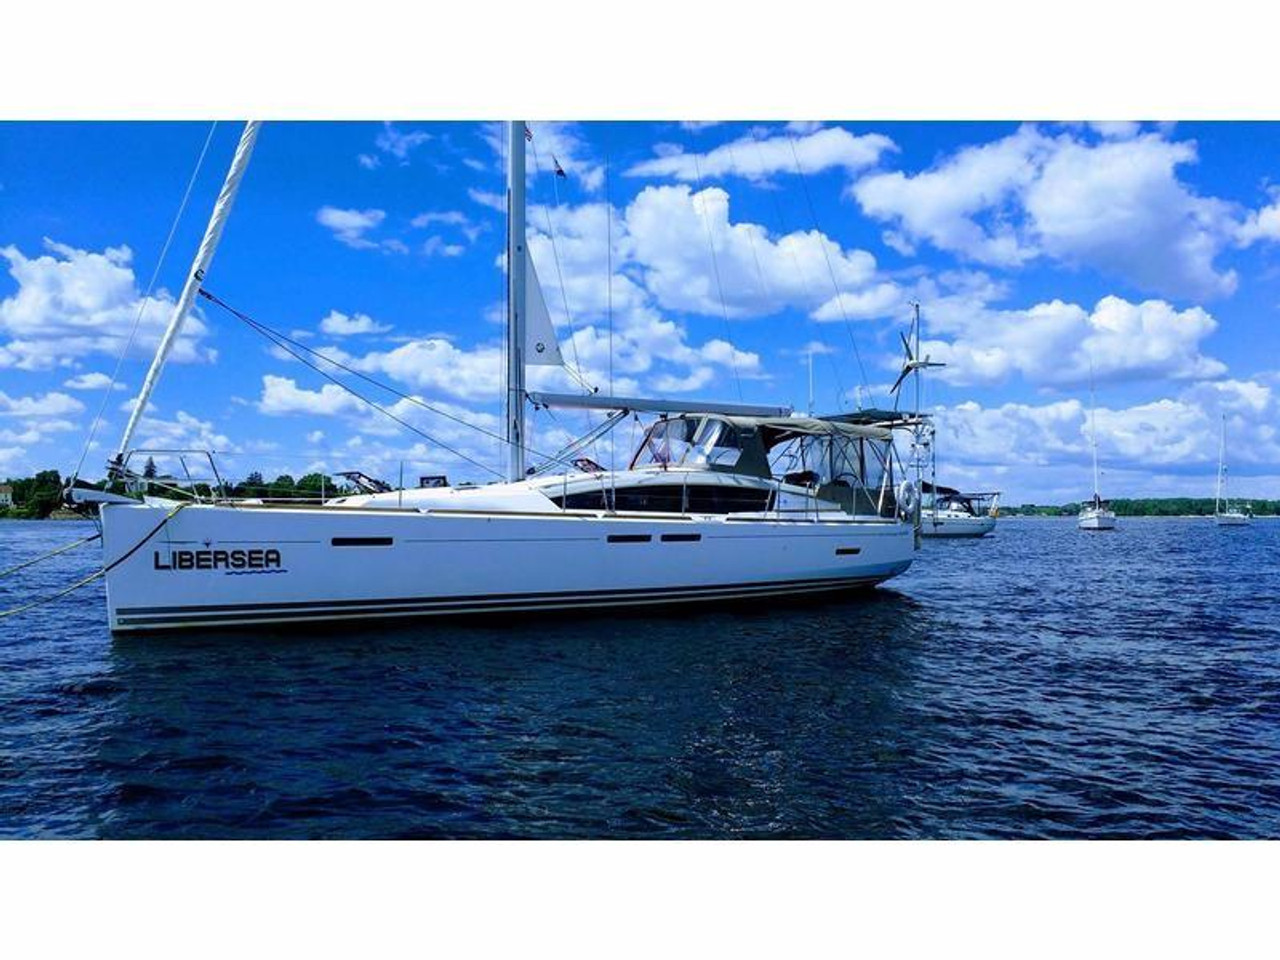 S/V Libersea, a 2012 Jeanneau 44DS equipped with a Marine Kinetix Wind Generator